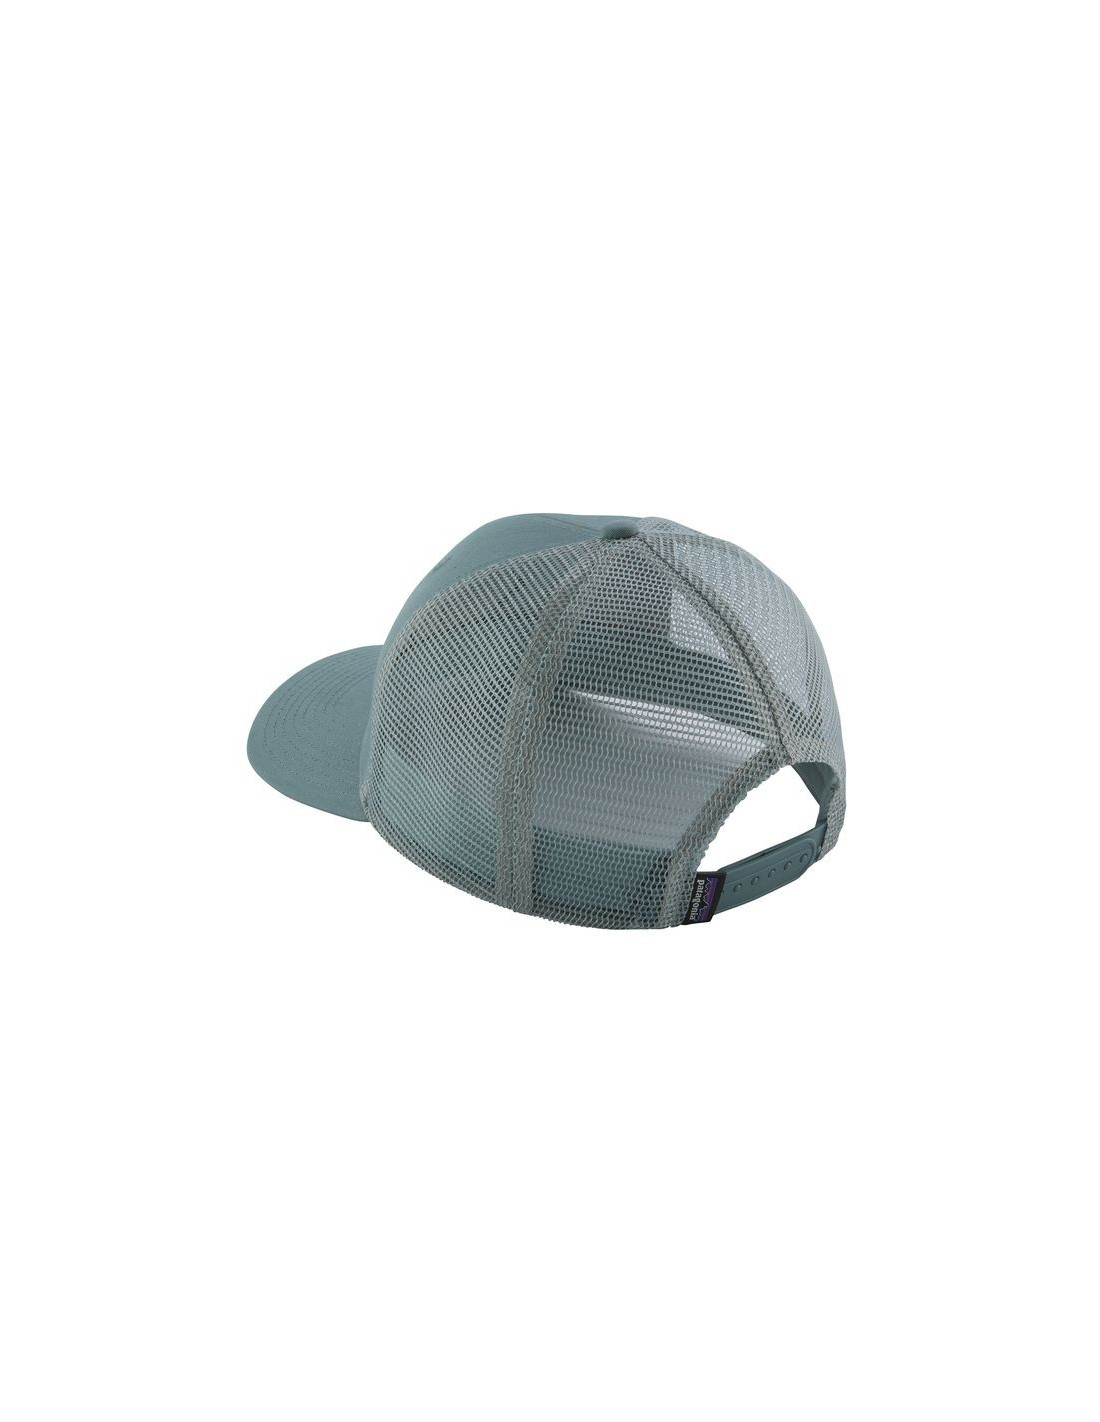 875cd4f7106 Fitz Roy Hex Trucker Hat